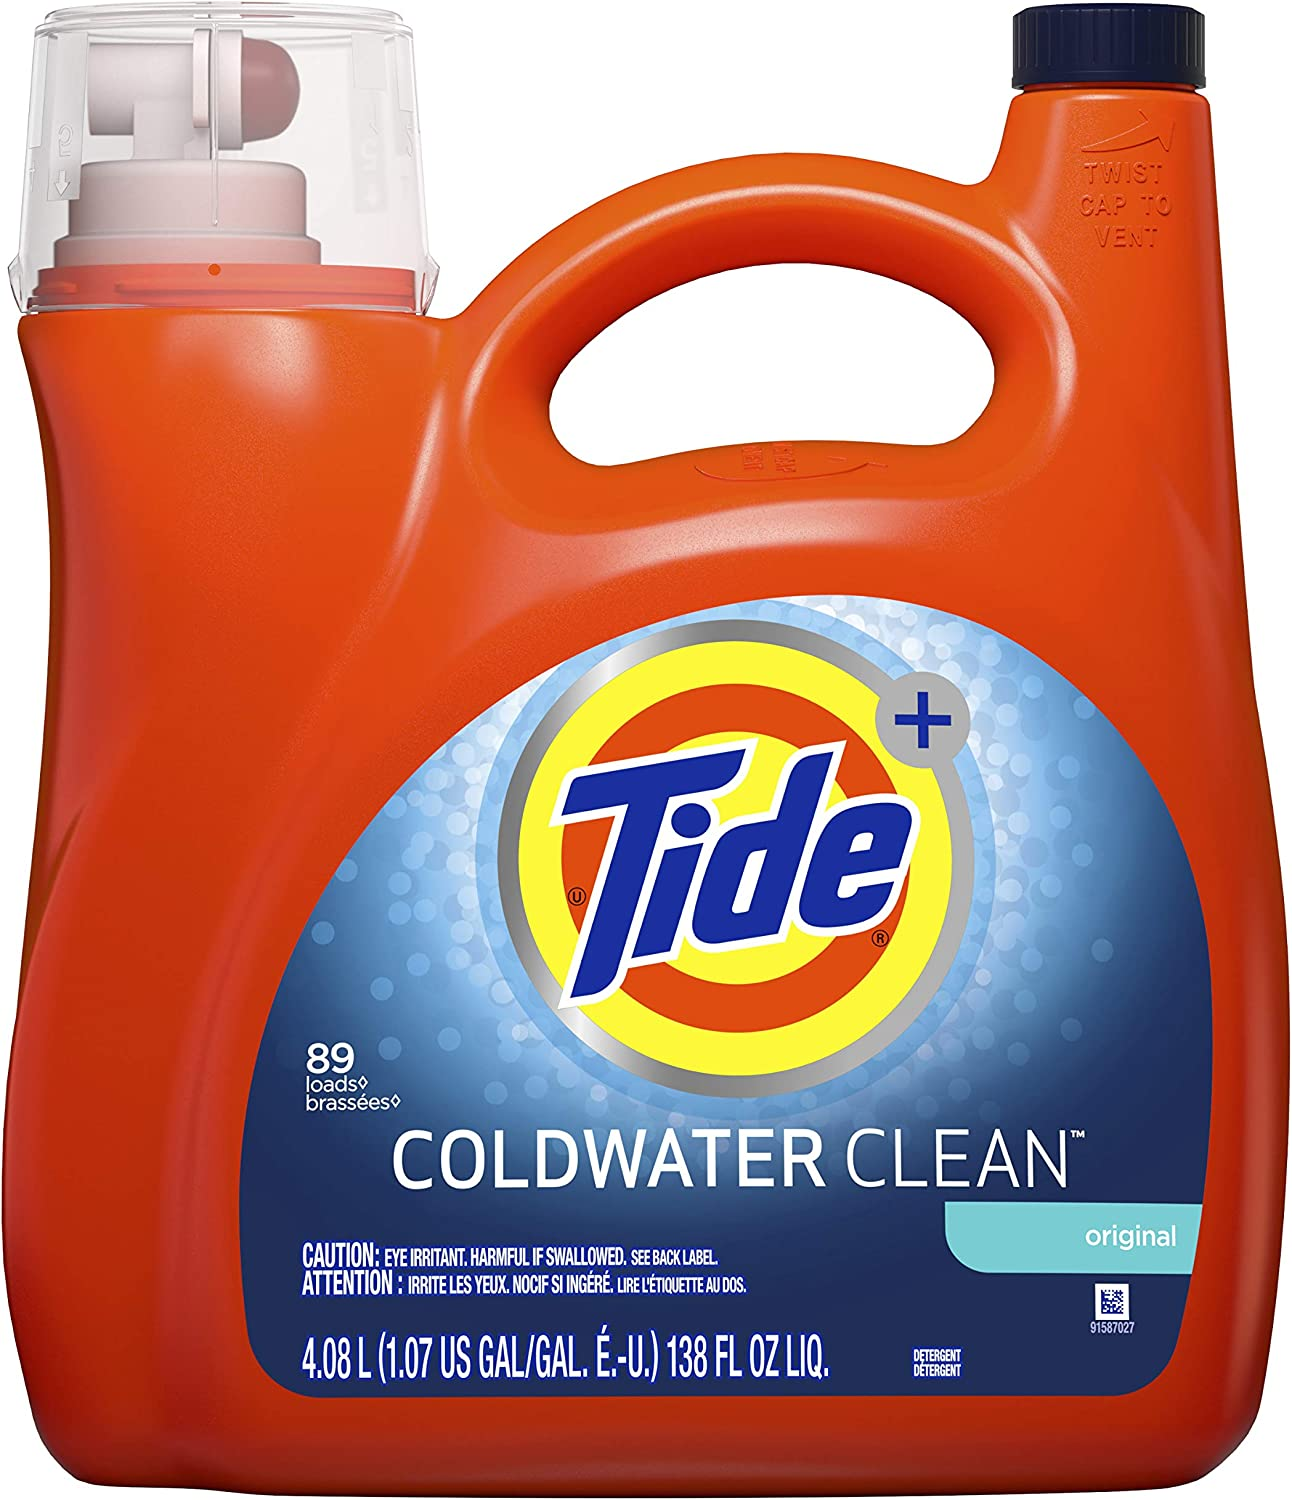 Tide HE Coldwater Turbo Clean Liquid Laundry Detergent, Original, 89 Loads, 138 Oz